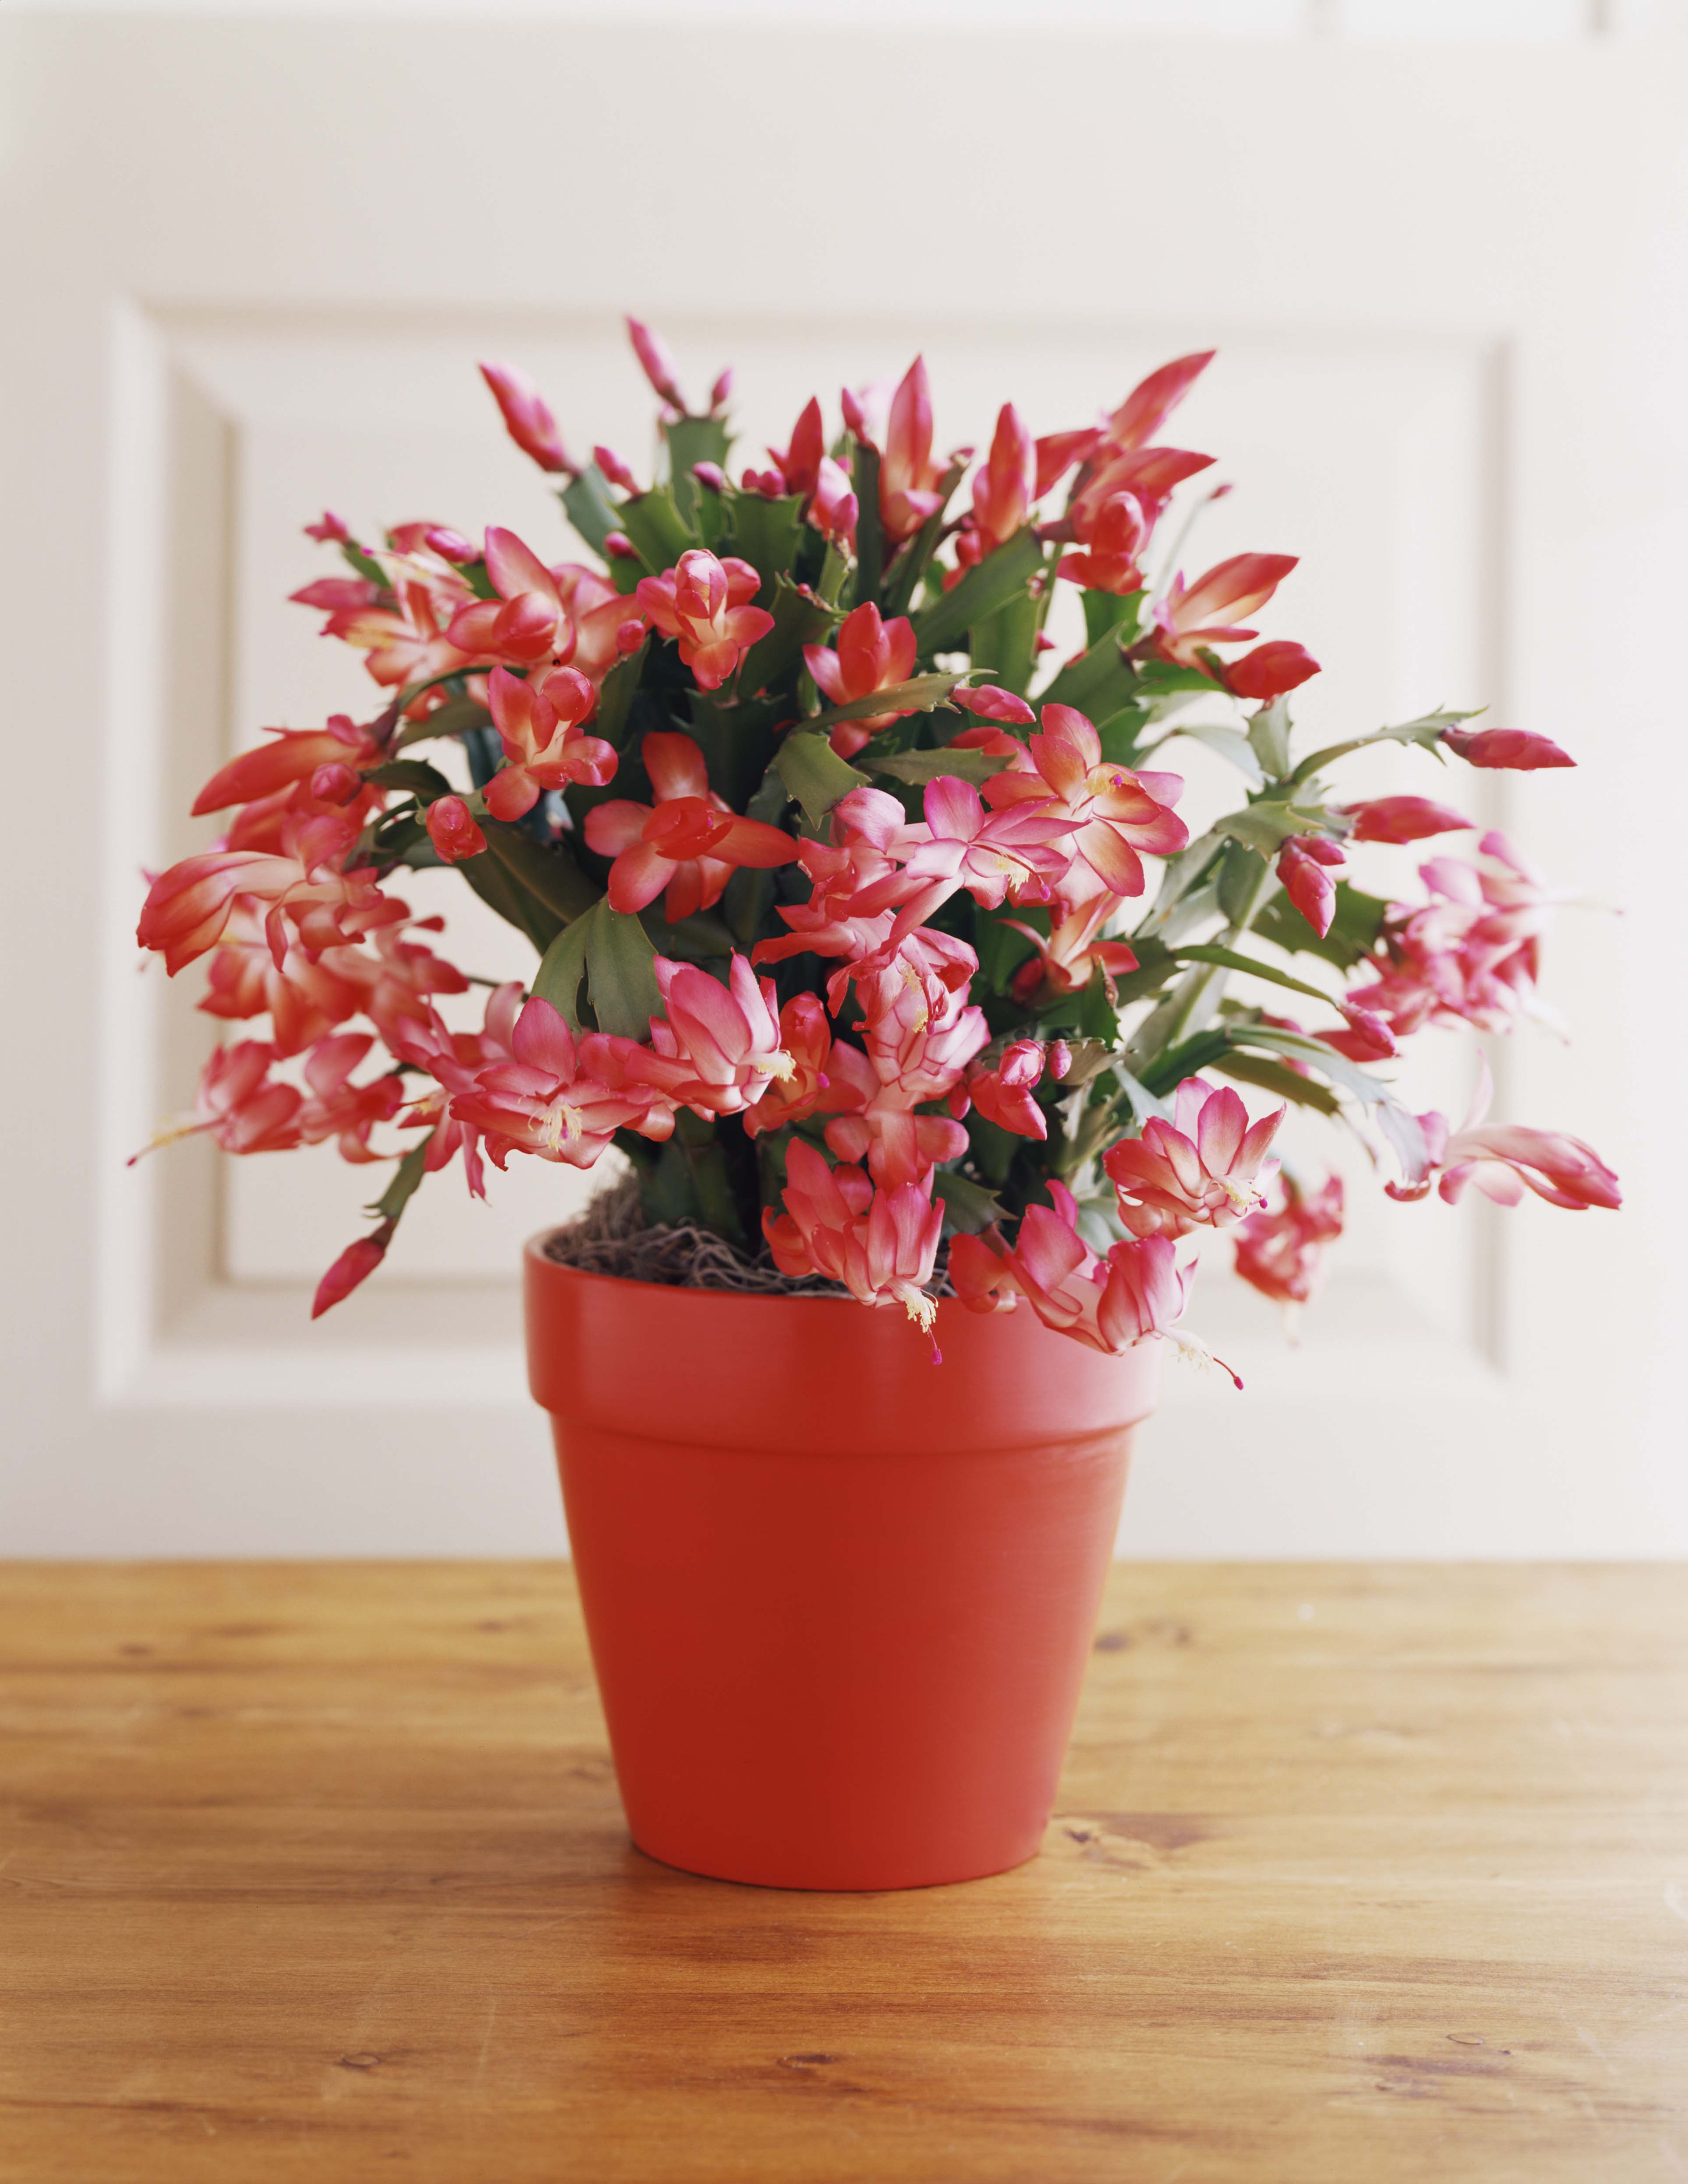 9 Best Christmas Plants - How to Care for Christmas Flowers